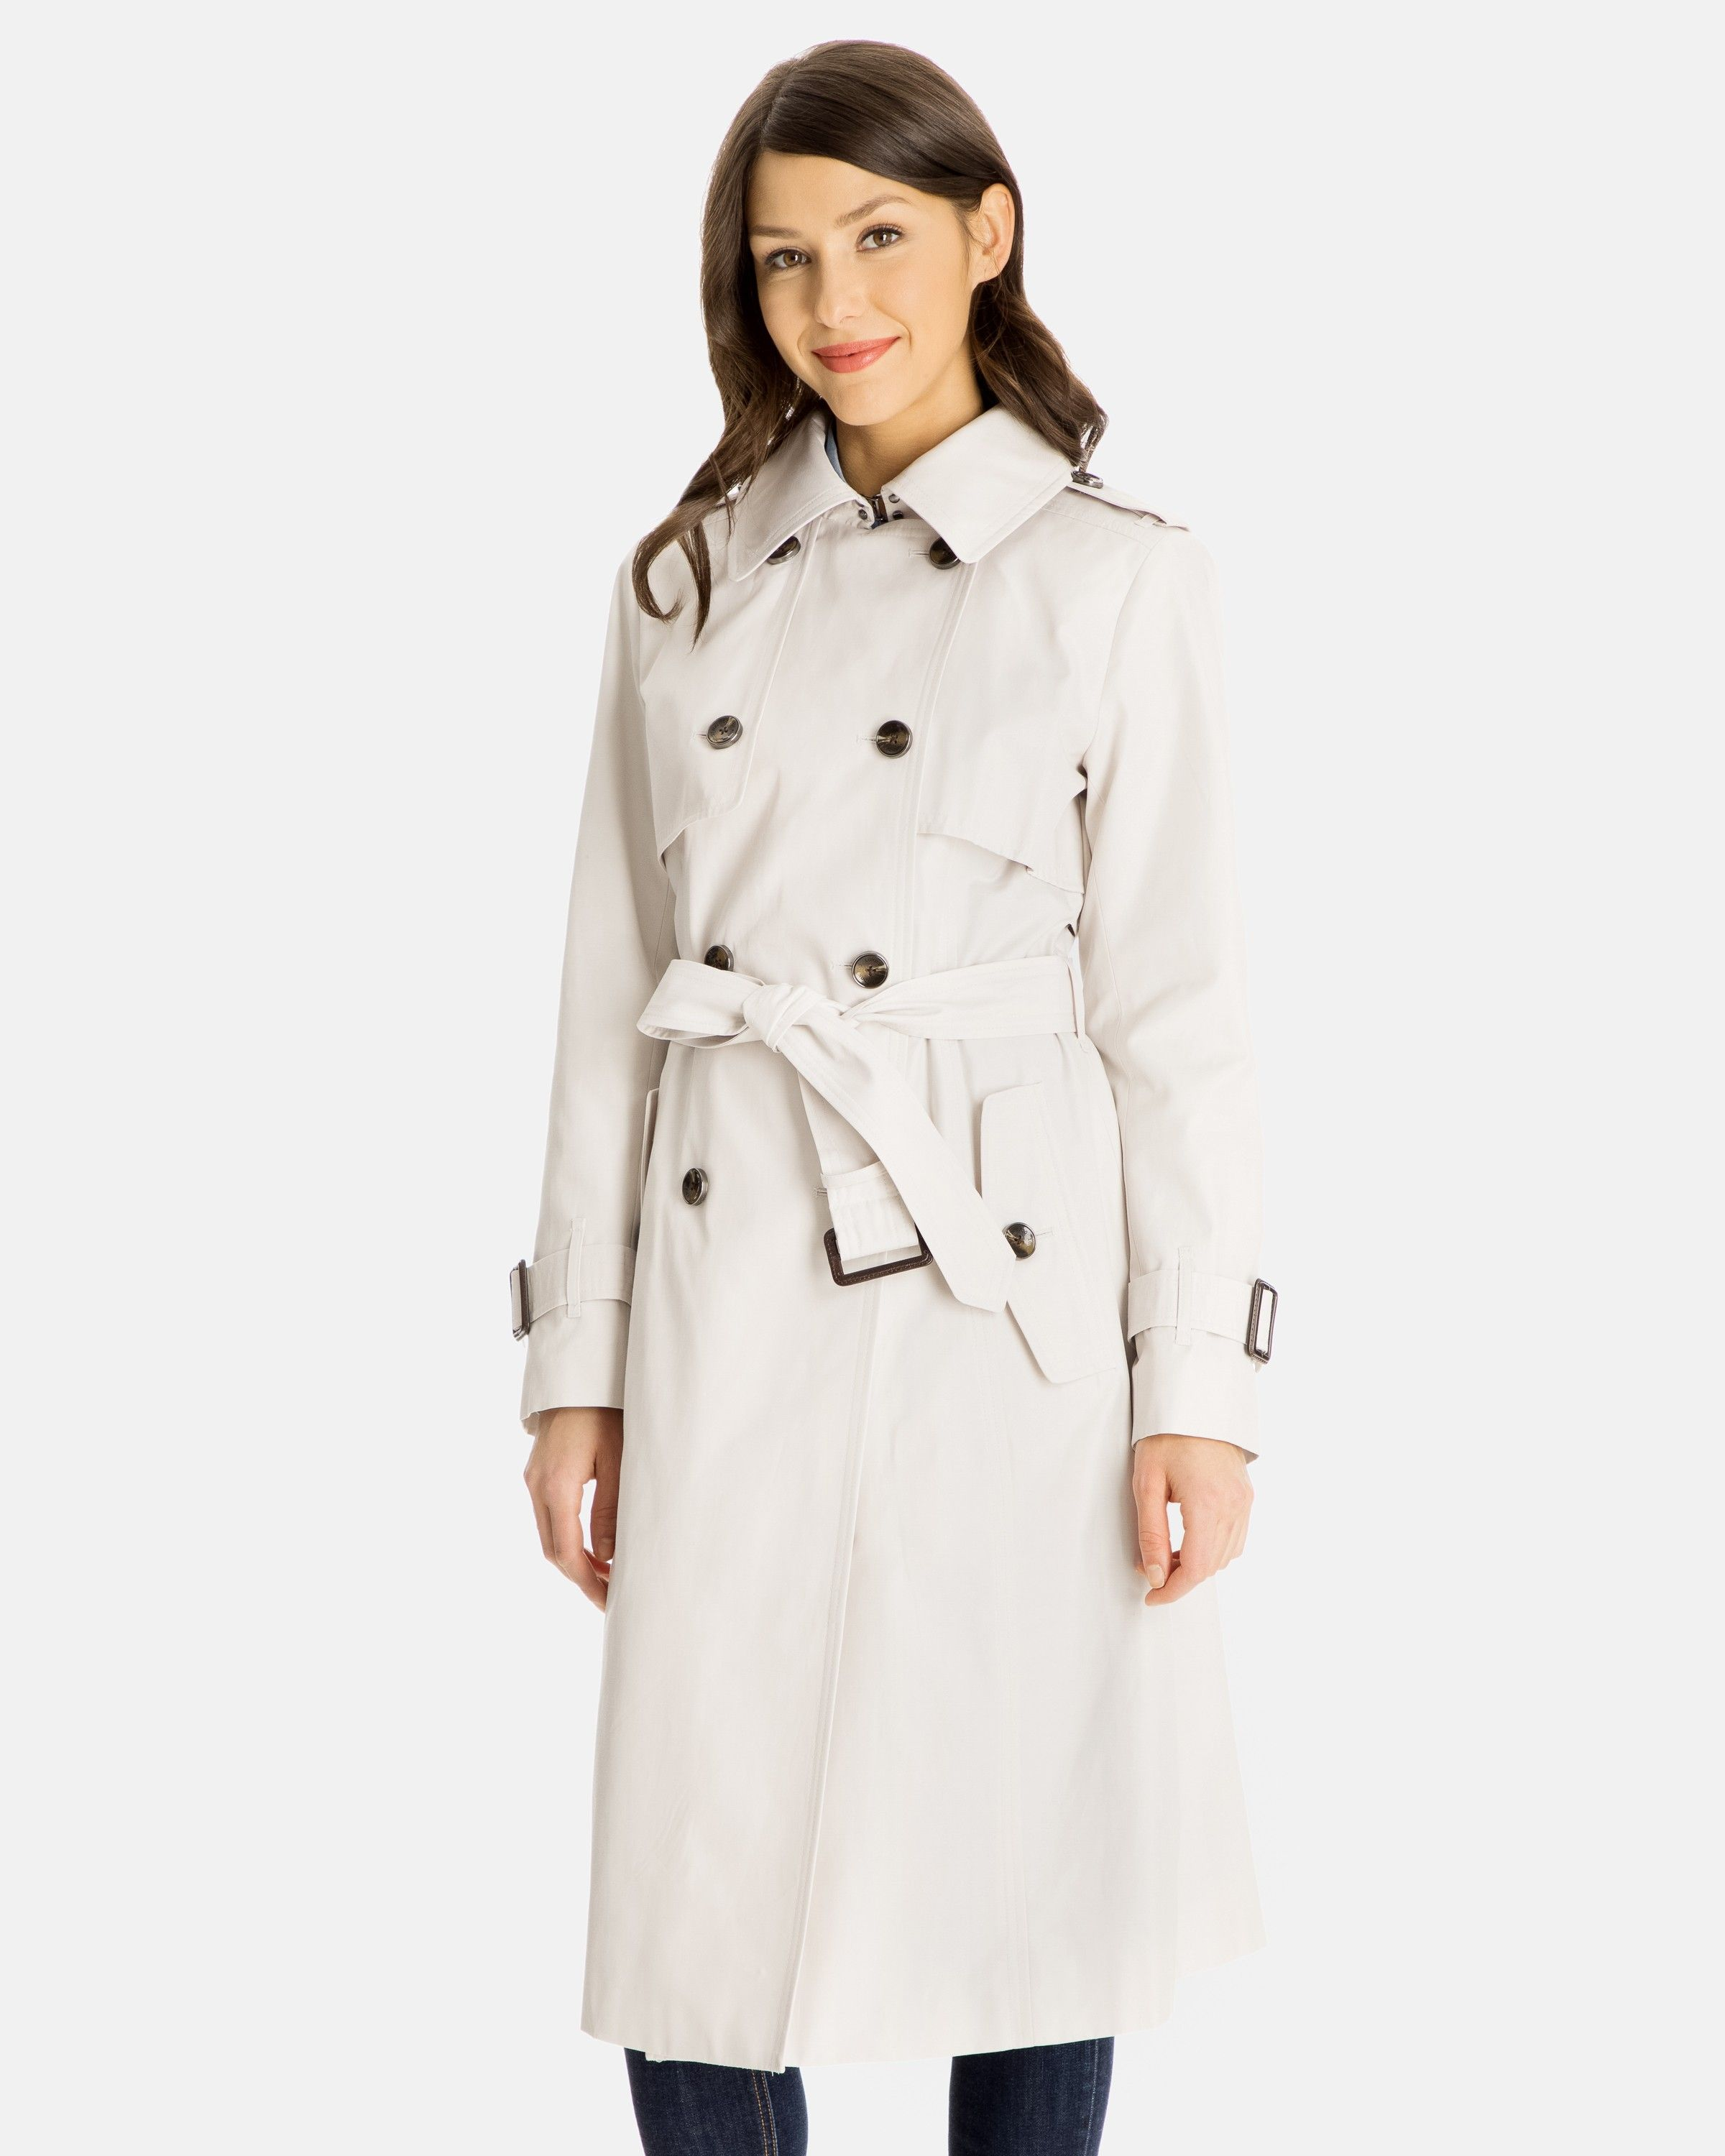 d614684affbf28 Fern Double-Breasted Trench Coat for Women - Gun Flaps